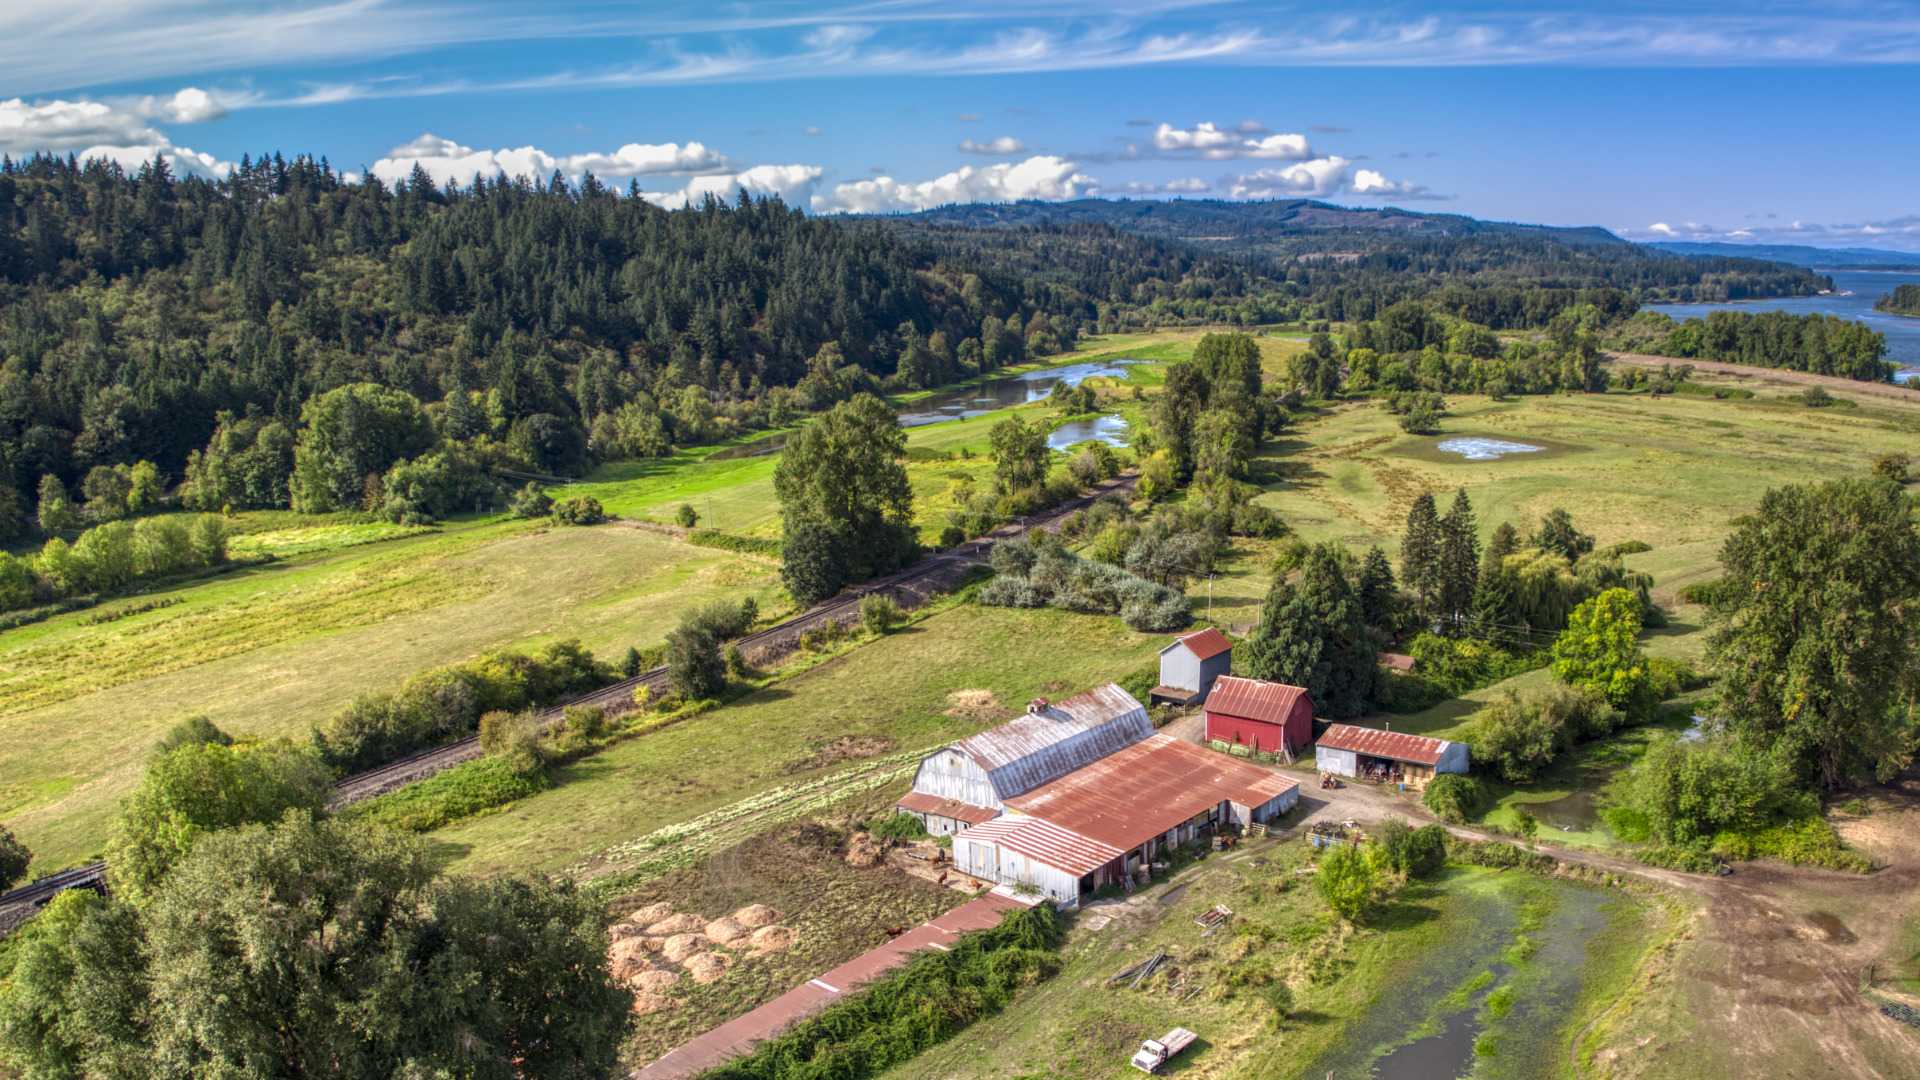 Drone aerials single exposure HDR with Aurora 2019, part 1